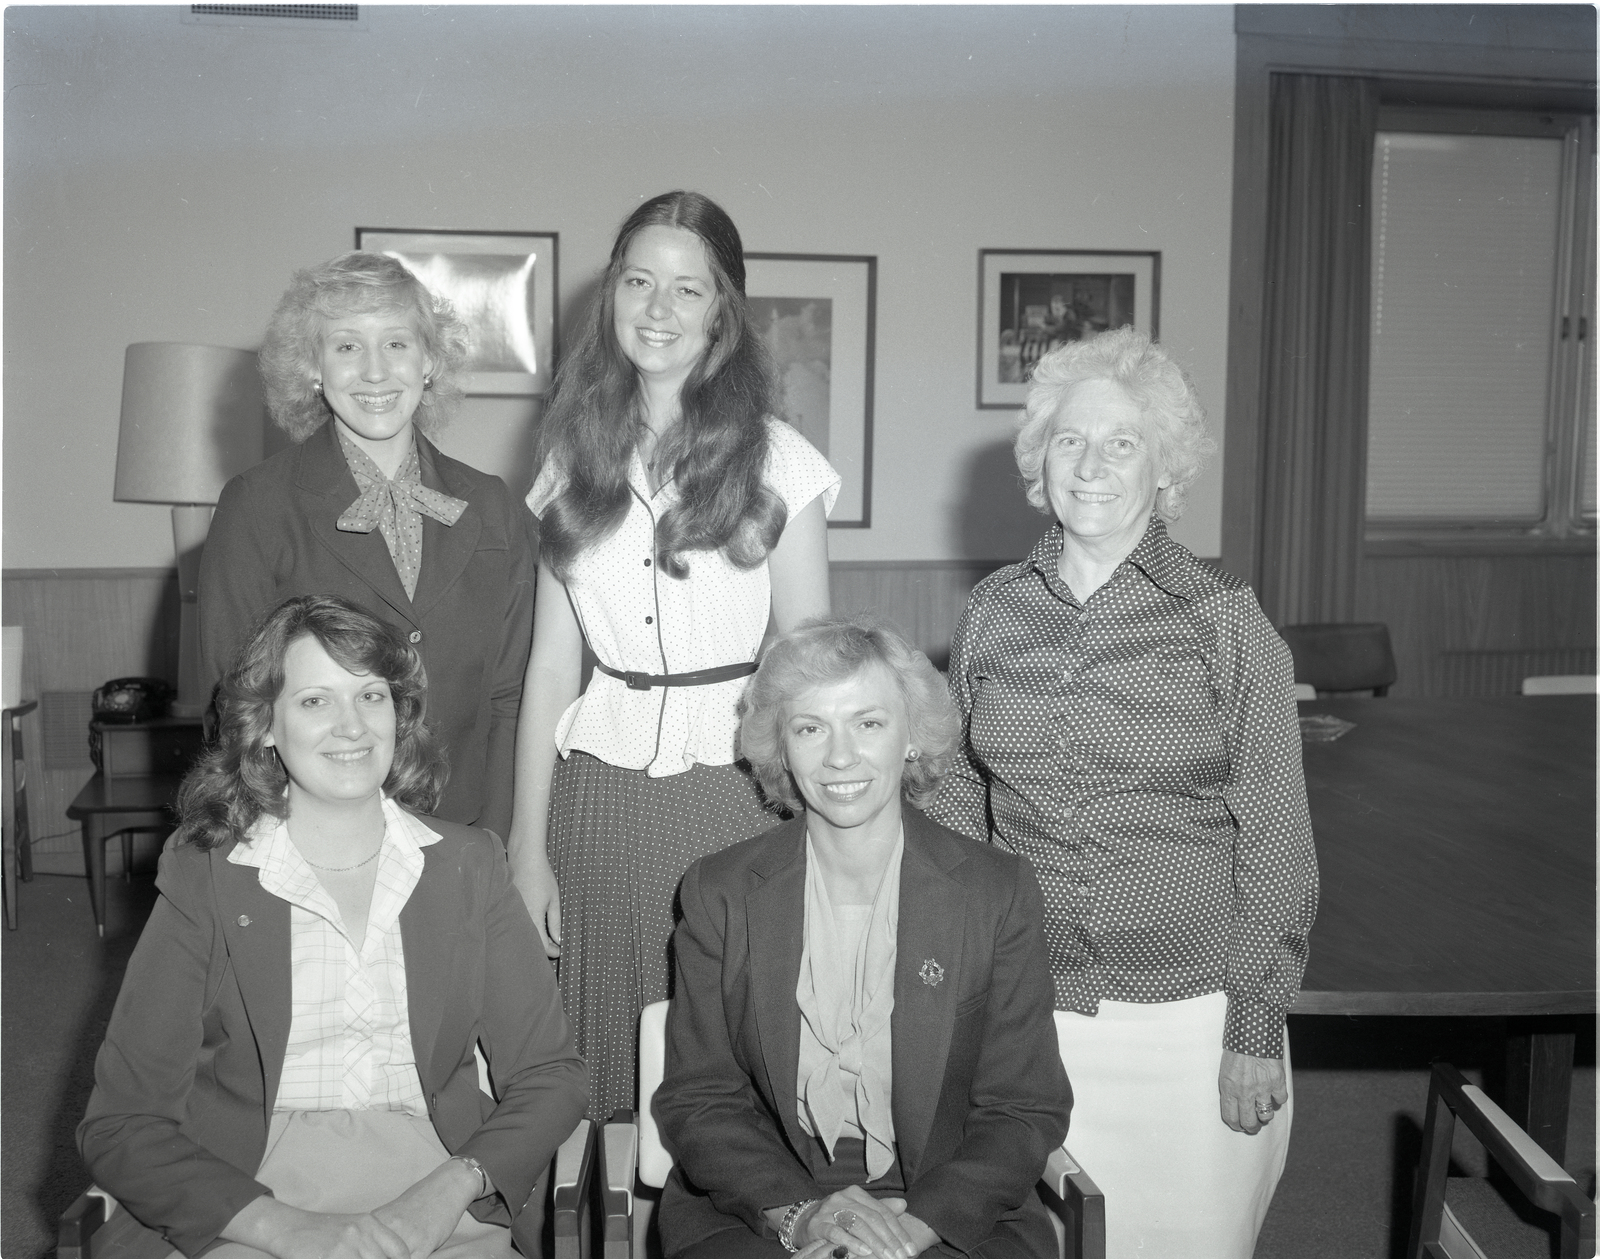 BPW BUSINESS PROFESSIONAL WOMENS CLUB OFFICERS